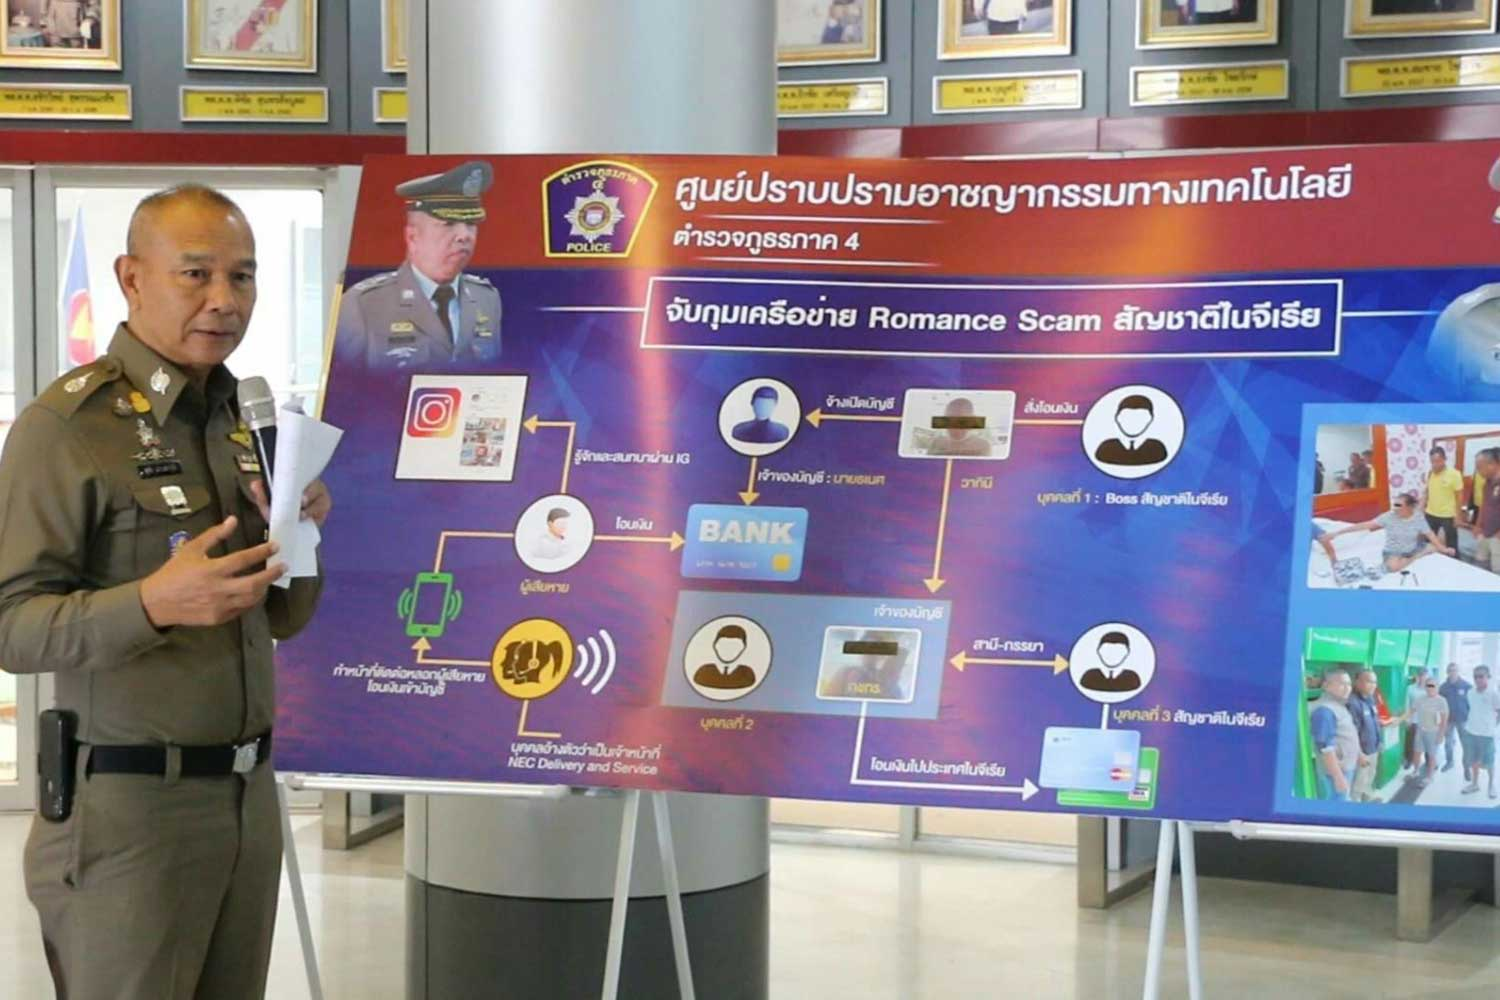 Pol Lt Gen Surachai Khuandechakupt, chief of Provincial Police Region 4, shows a chart depicting the operation of a Nigerian-led romance scam preying on victims in Udon Thani. Three Thais have been arrested and warrants issued for the two Nigerian leaders, he said. (Photo by Chakrapan Nathanri)